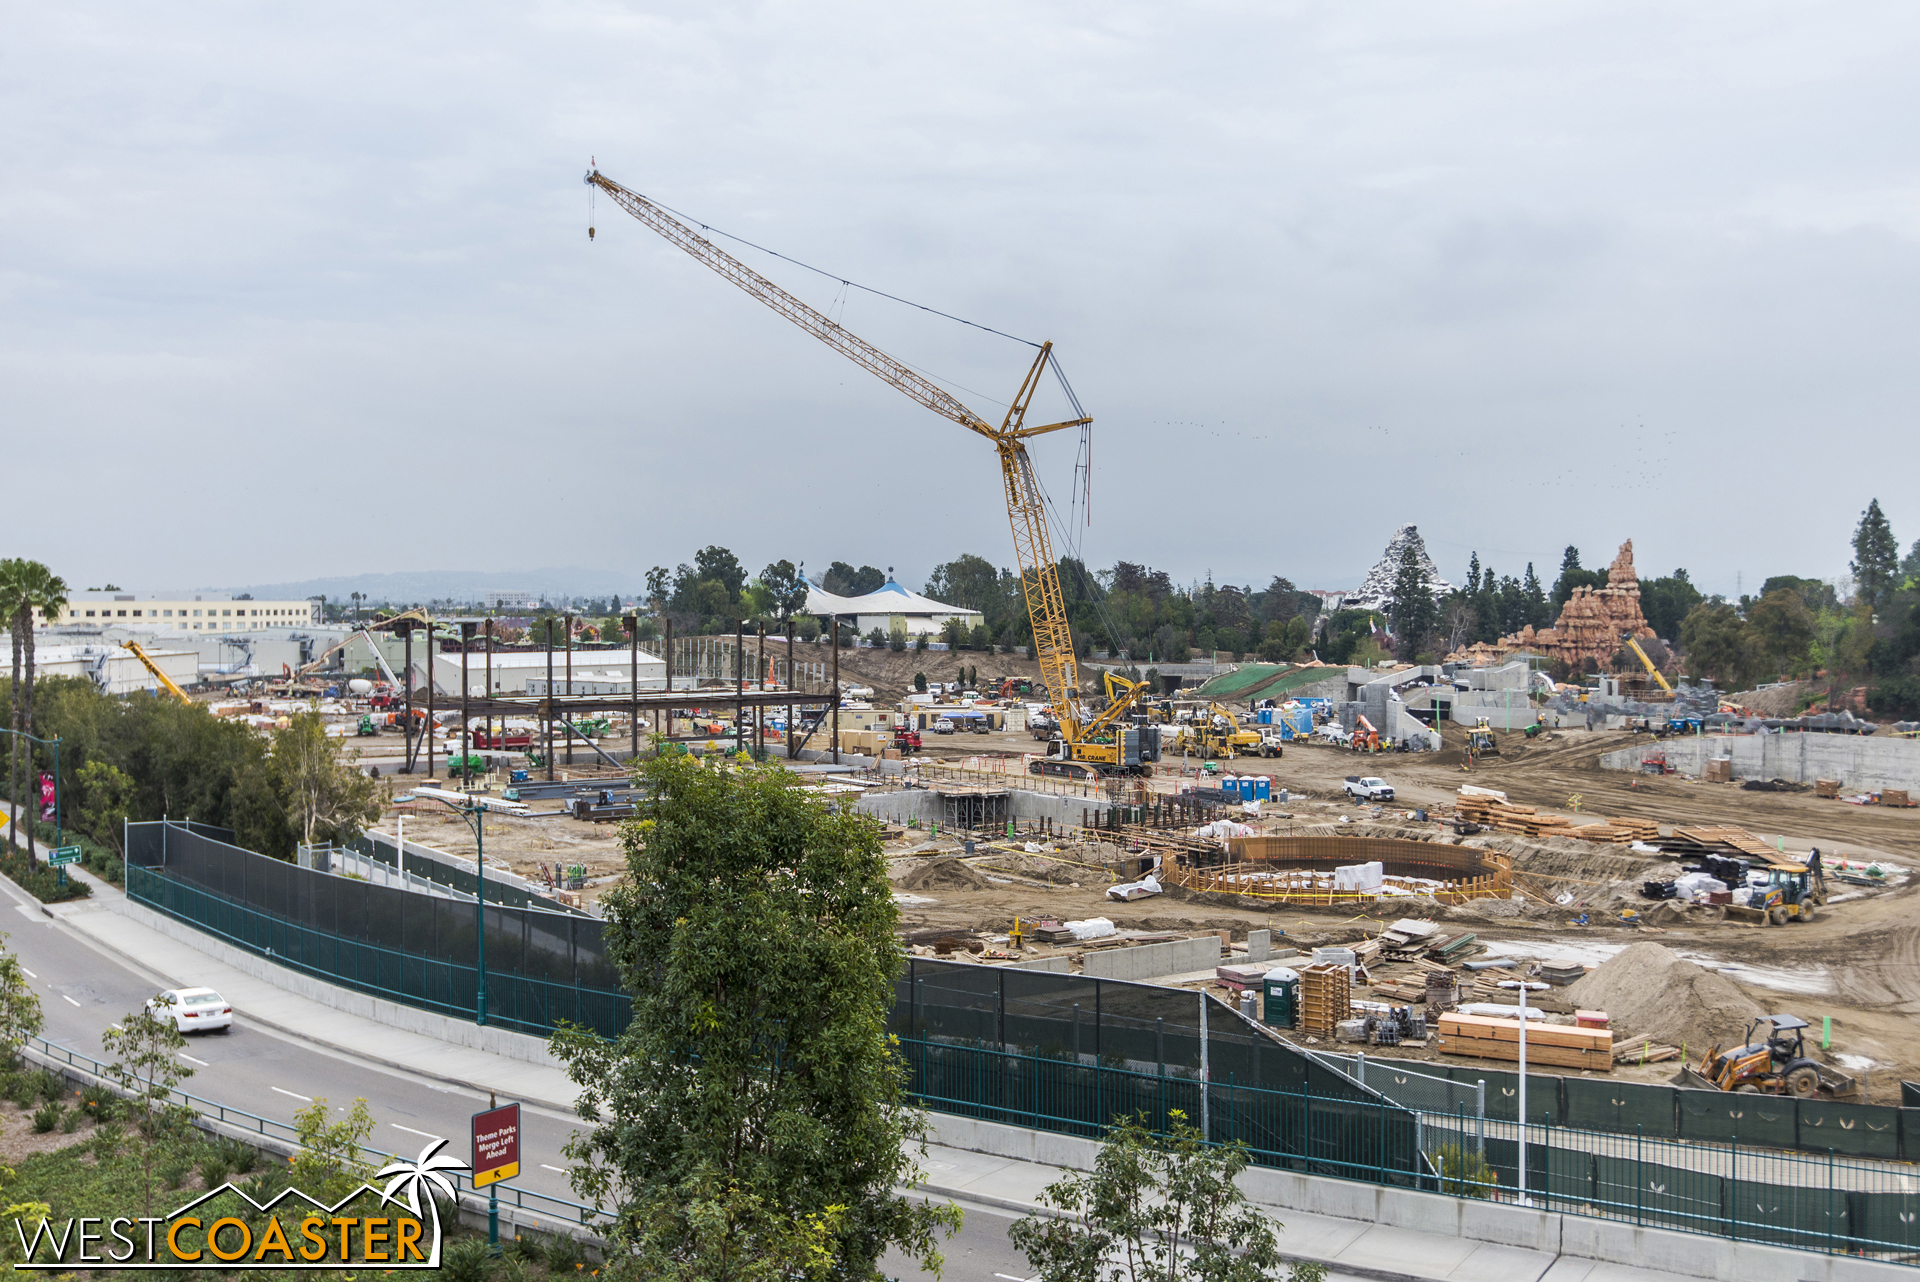 The most obvious new feature since last time is structural steel being put up. Even last week, this scene looked different.